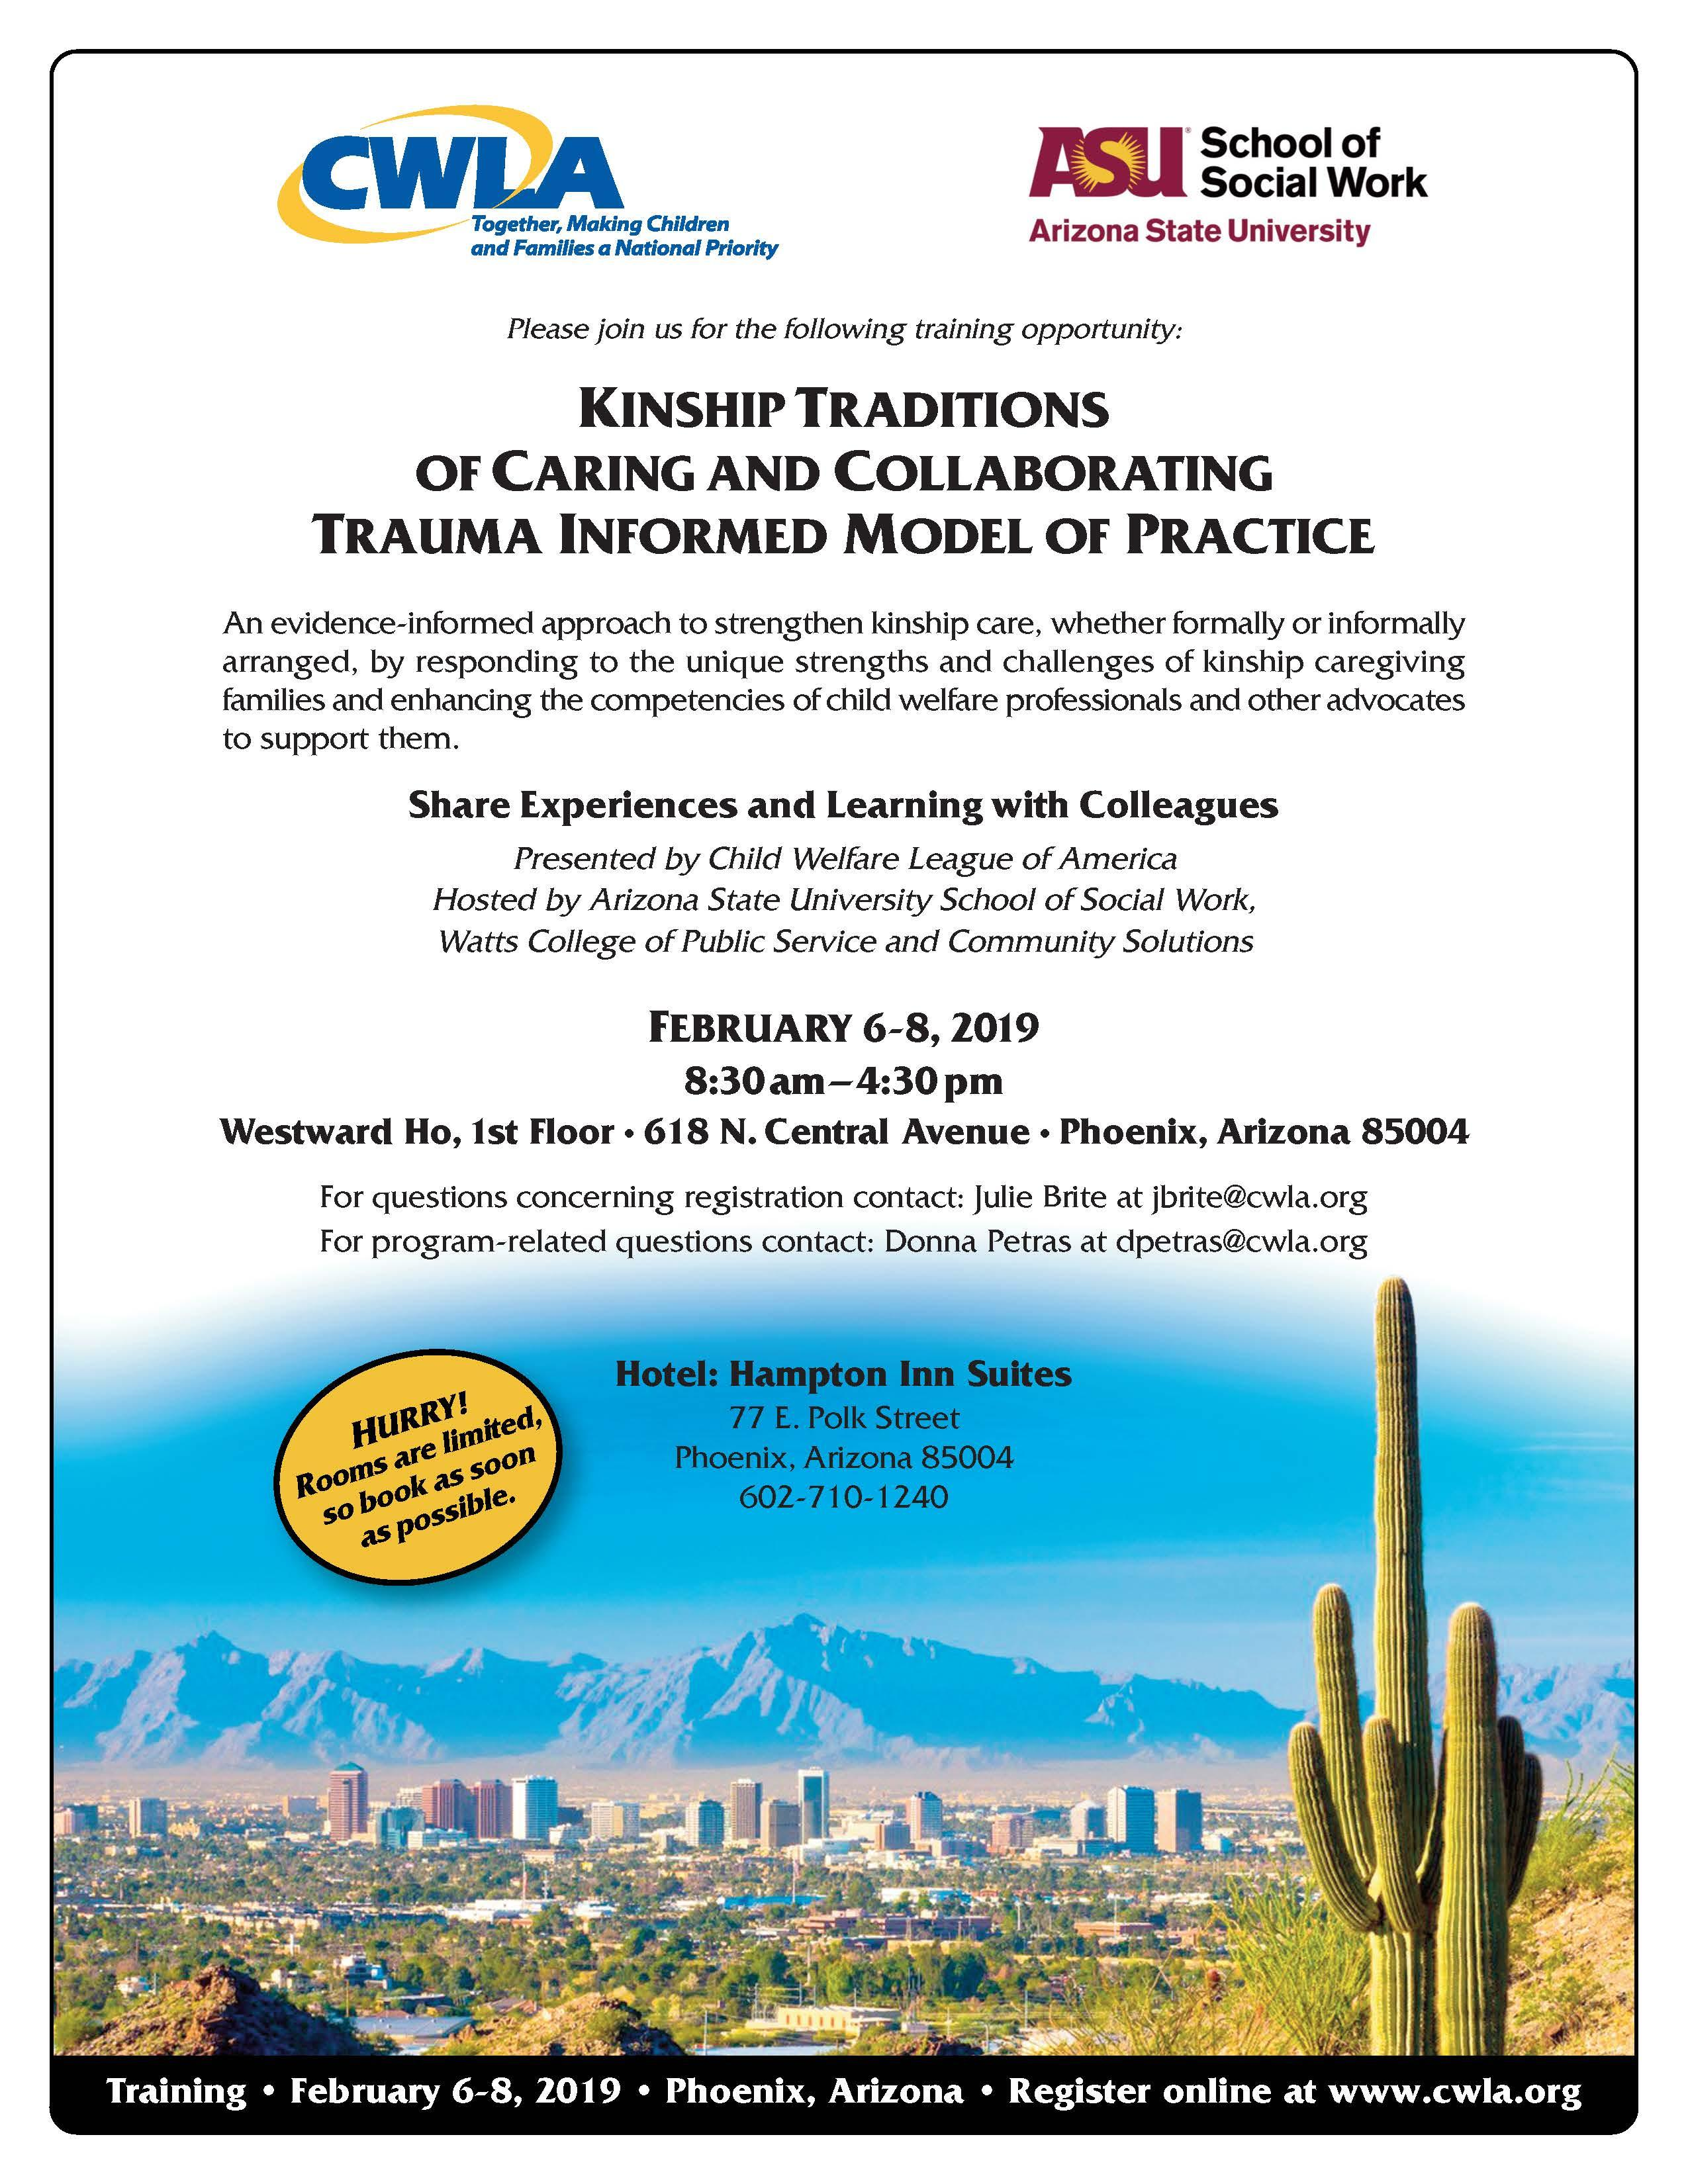 Kinship Care Training Conference | School of Social Work